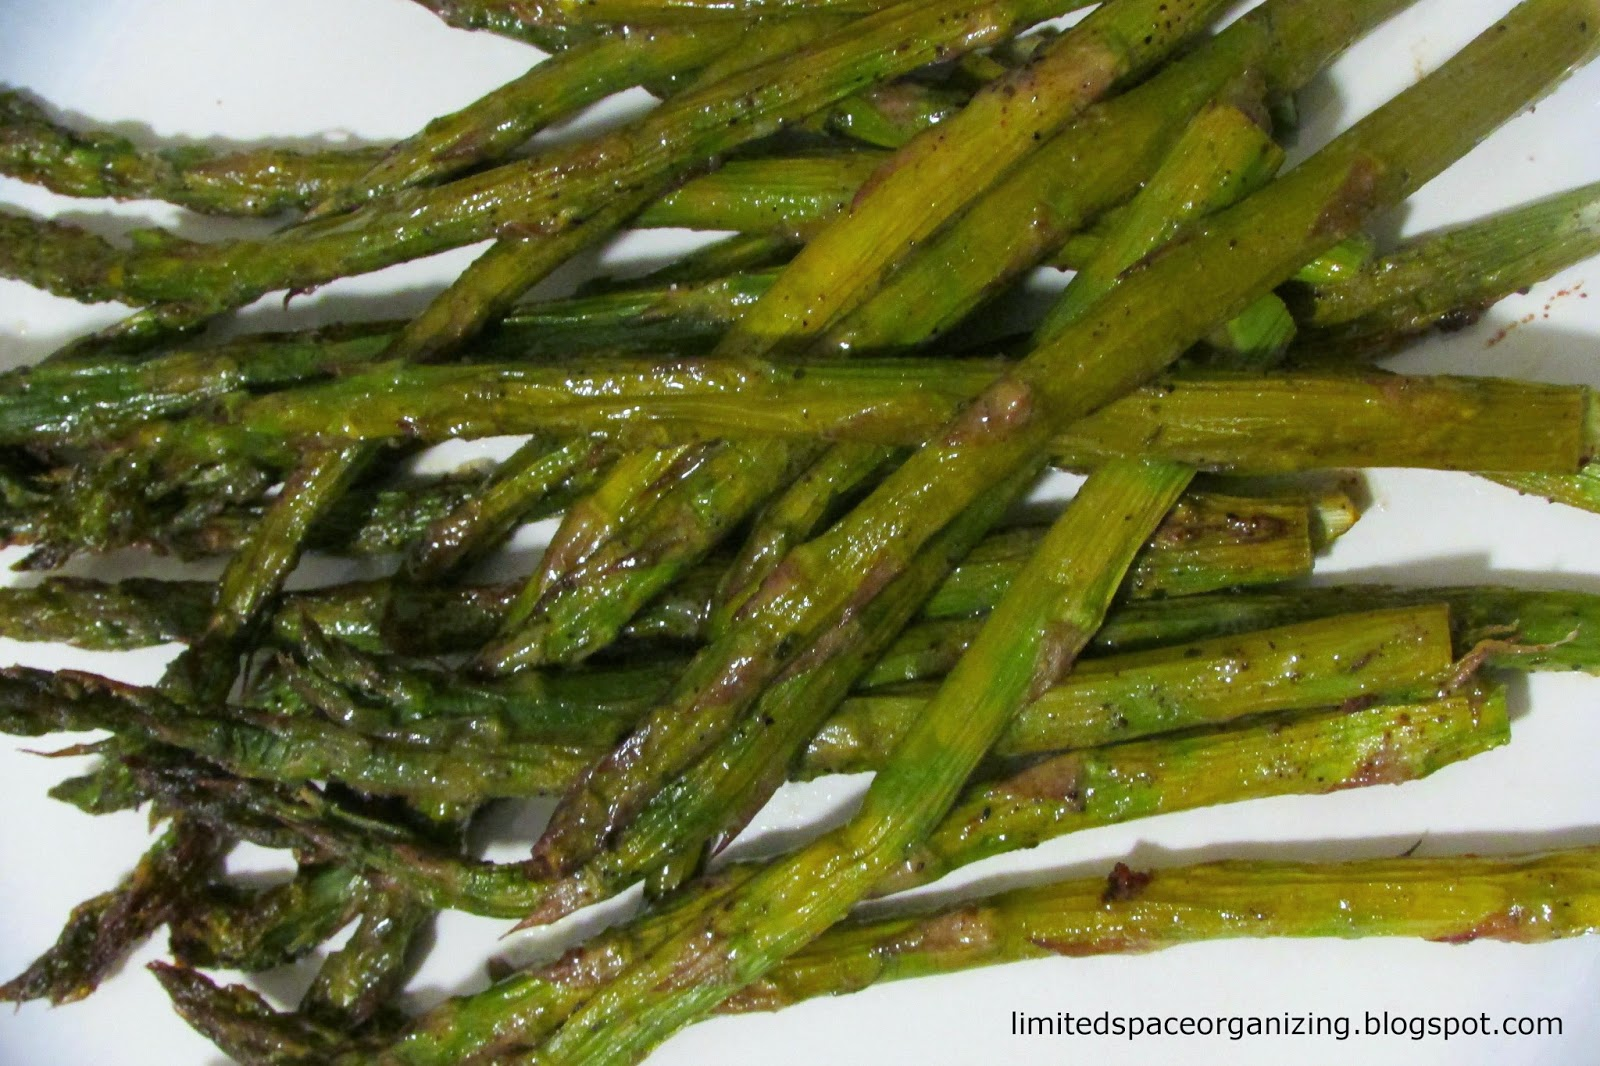 Limited Space Organizing: Ranch Roasted Asparagus